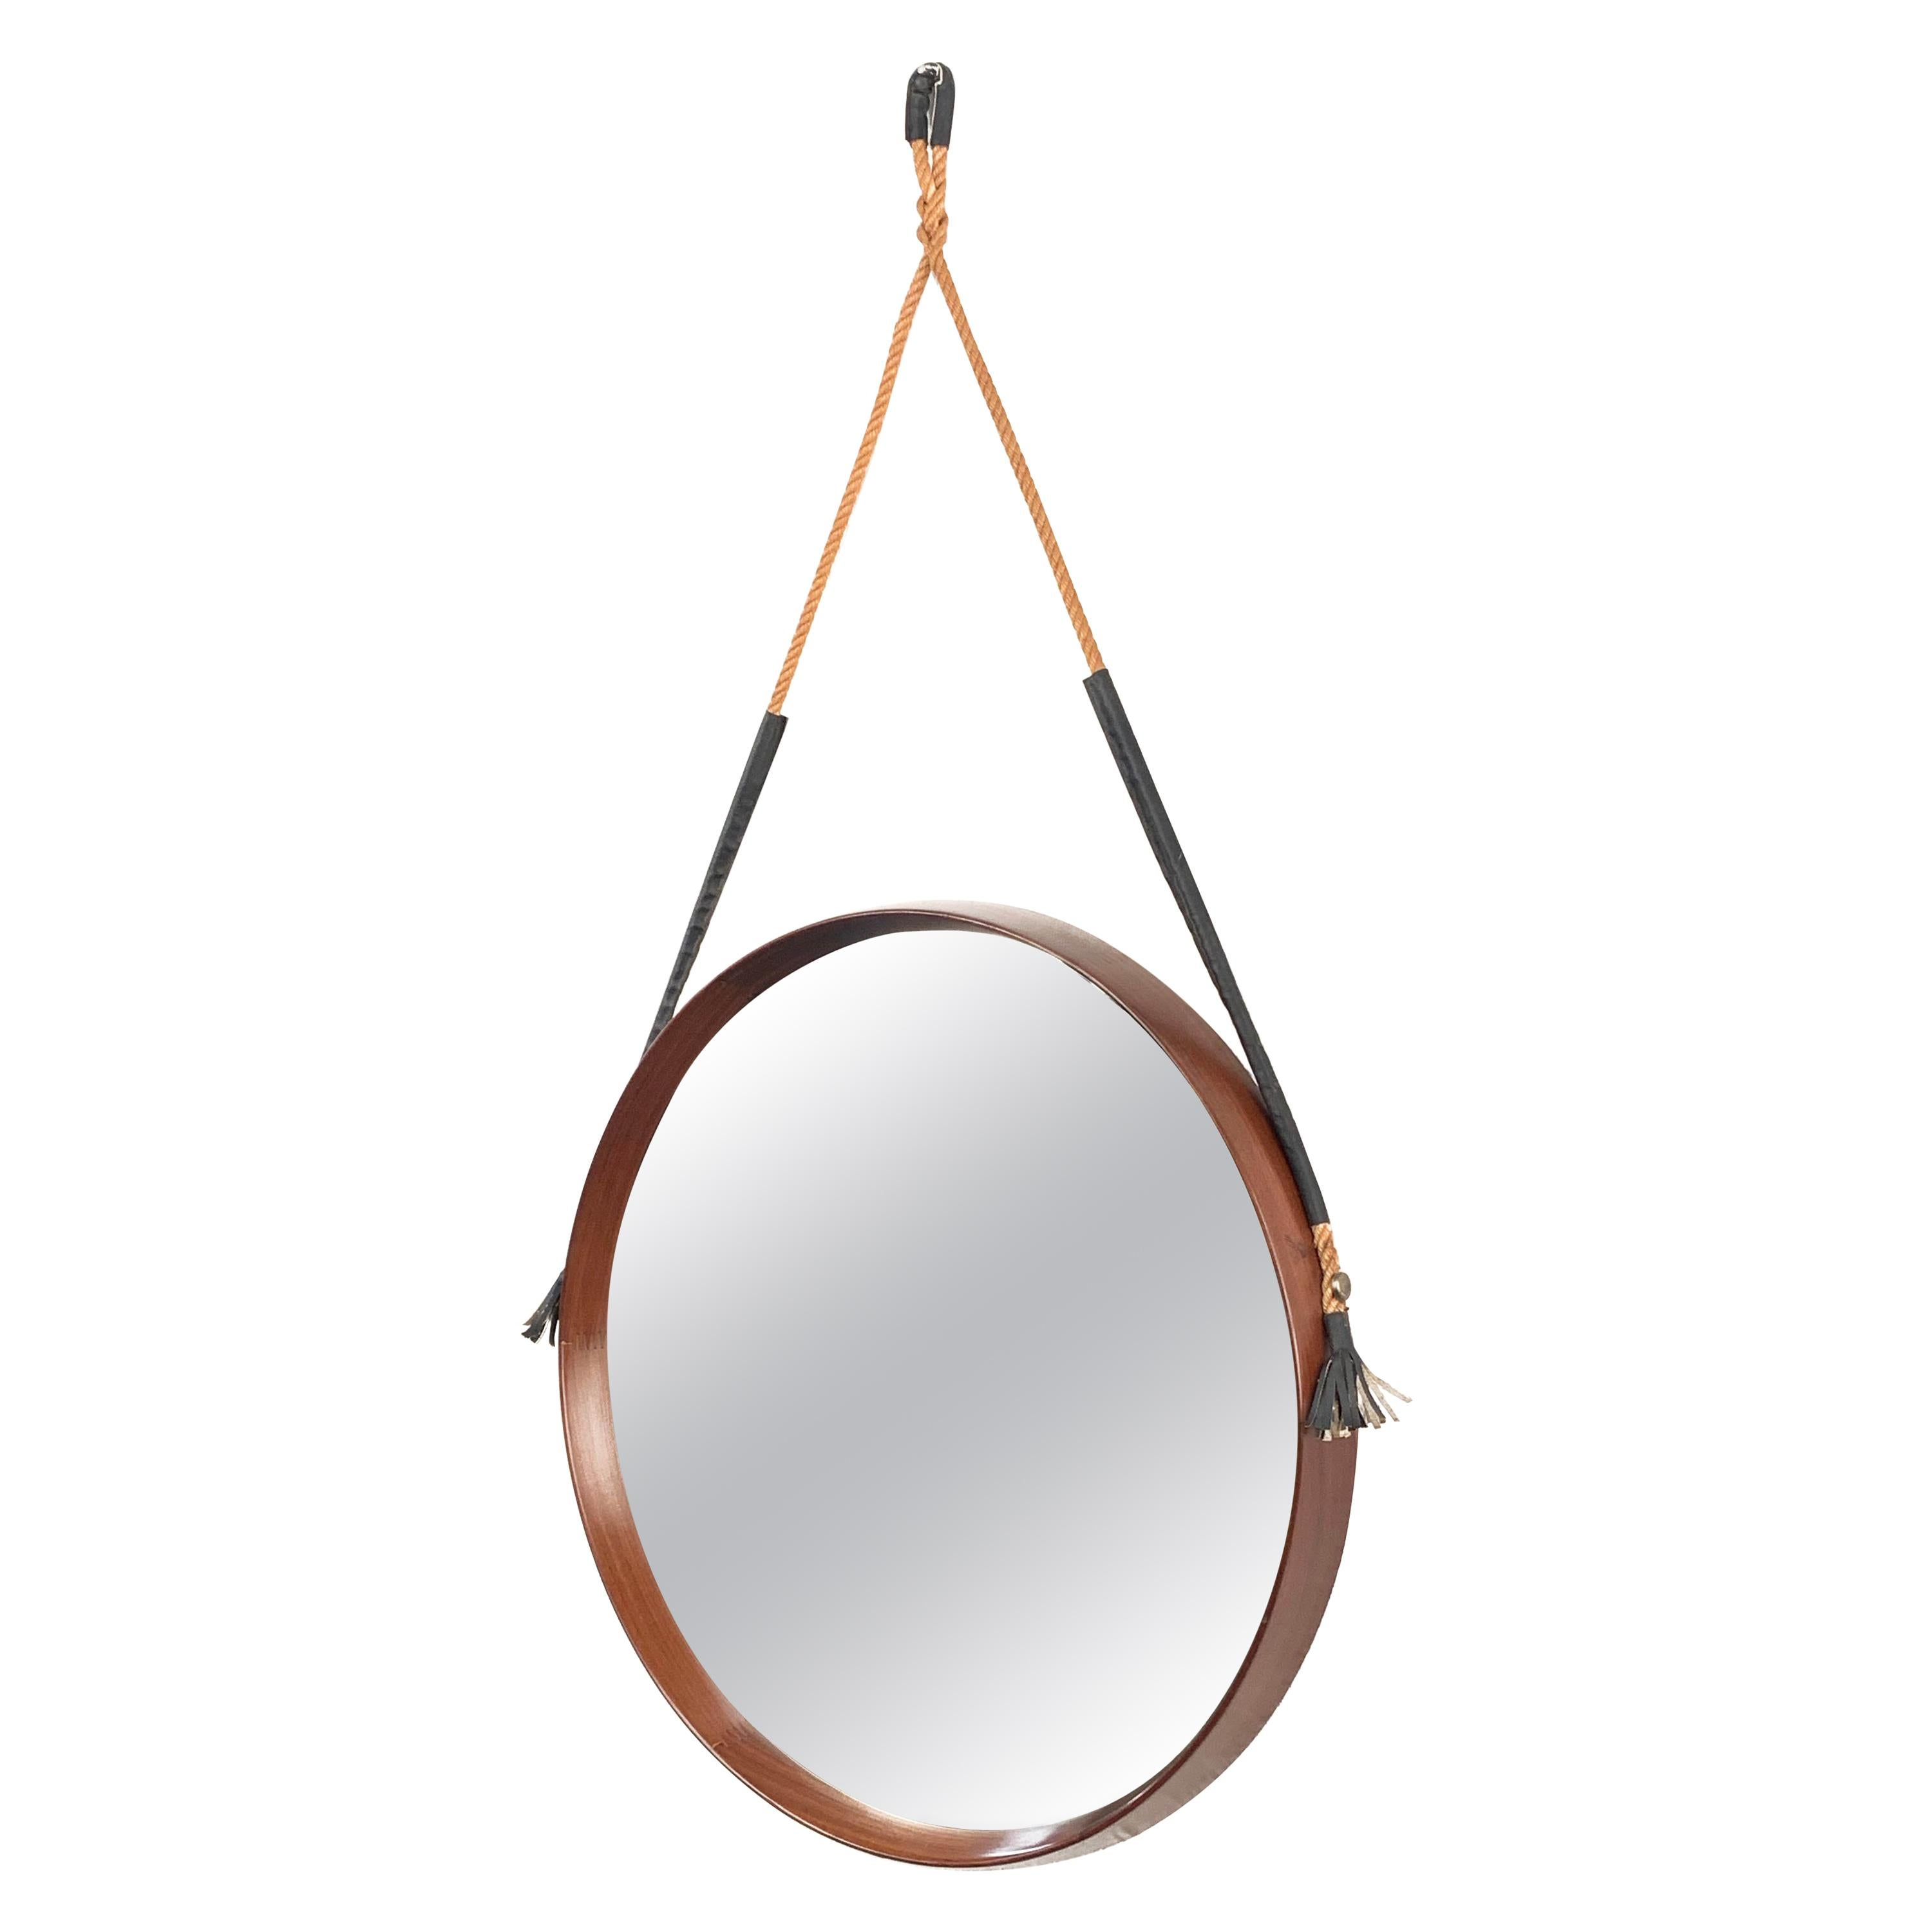 Midcentury Rope and Leather Round Teak Framed Italian Wall Mirror, 1960s